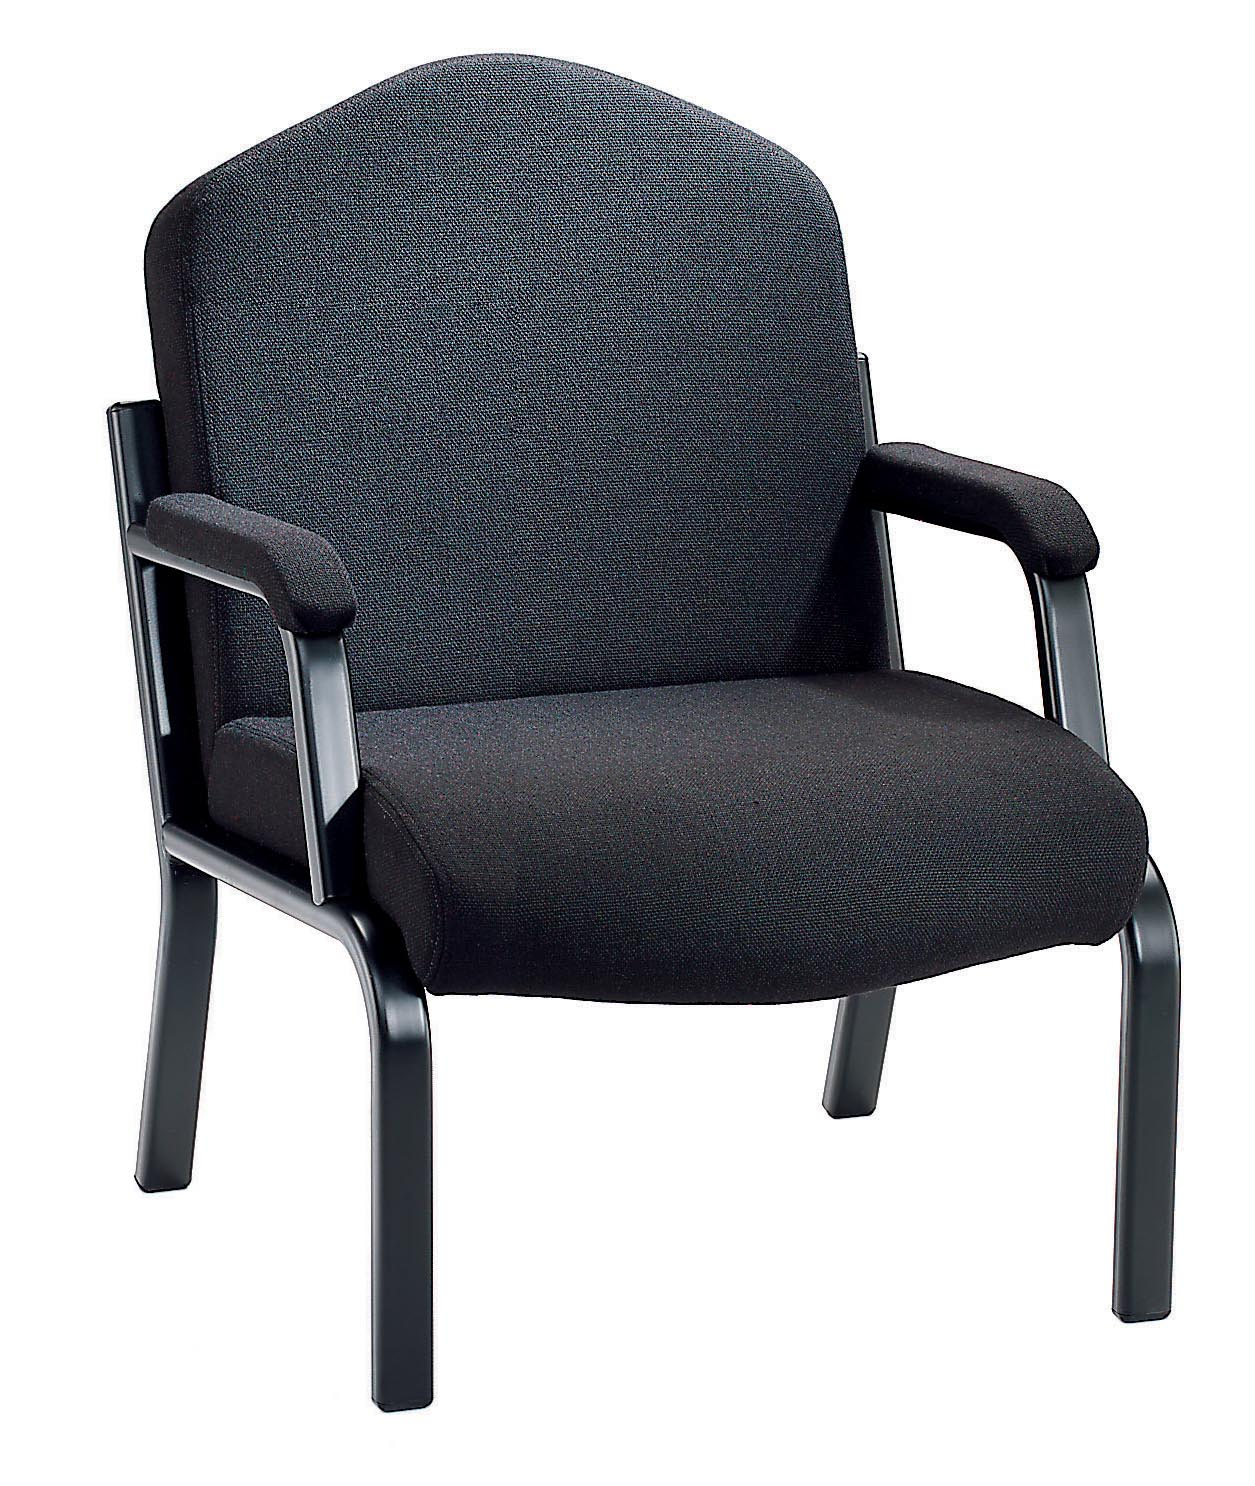 Heavy Duty Visitor Chairs Richardsons Office Furniture  : Heavy Duty Chairs 4 from www.richardsonsoffice.co.uk size 1255 x 1486 jpeg 329kB